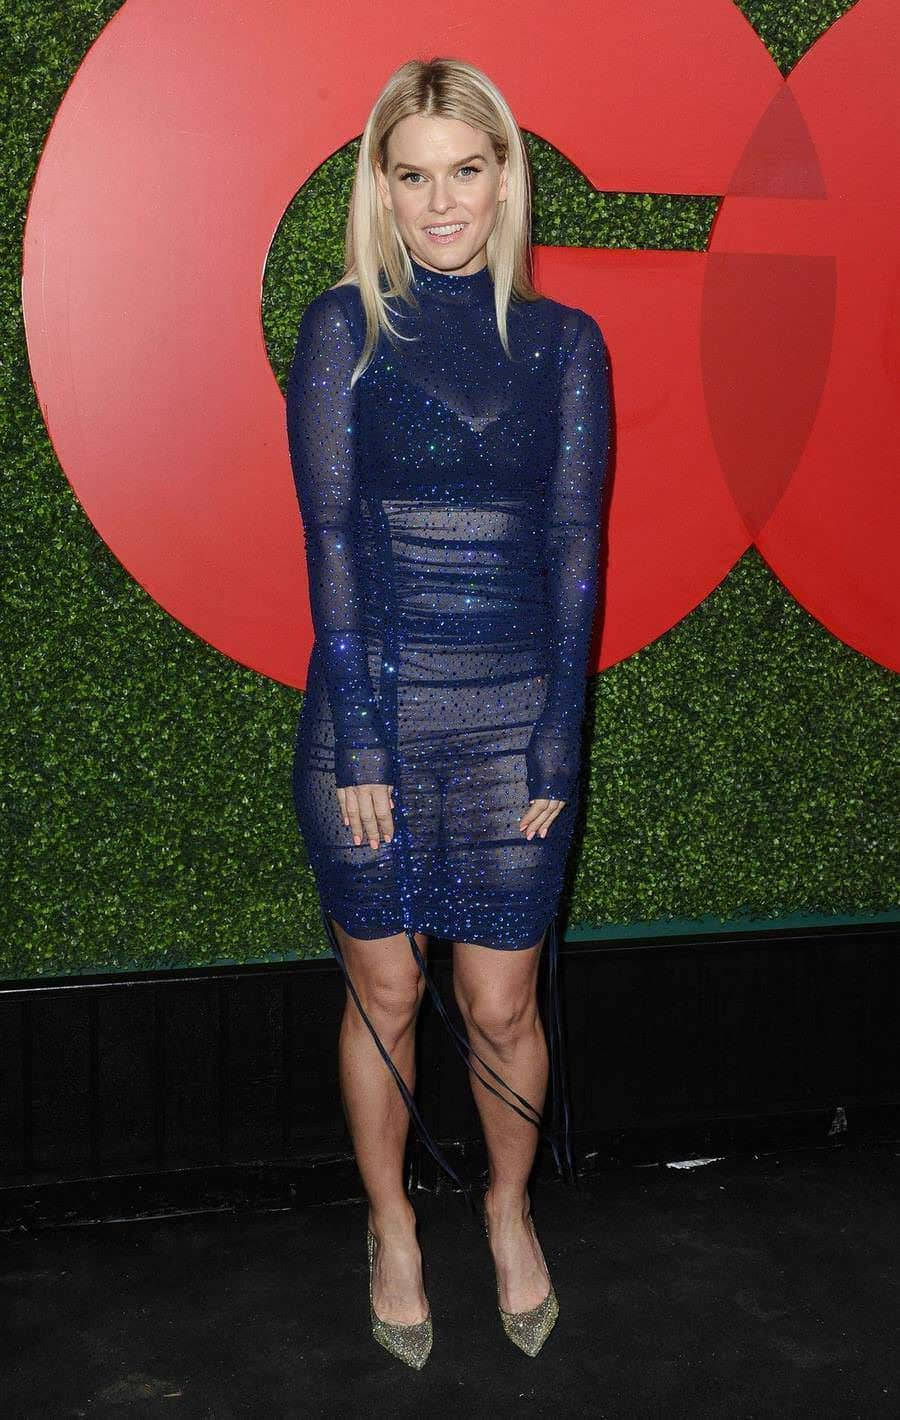 Alice Eve Pantiless Displays Her Pussy In See Through Dress